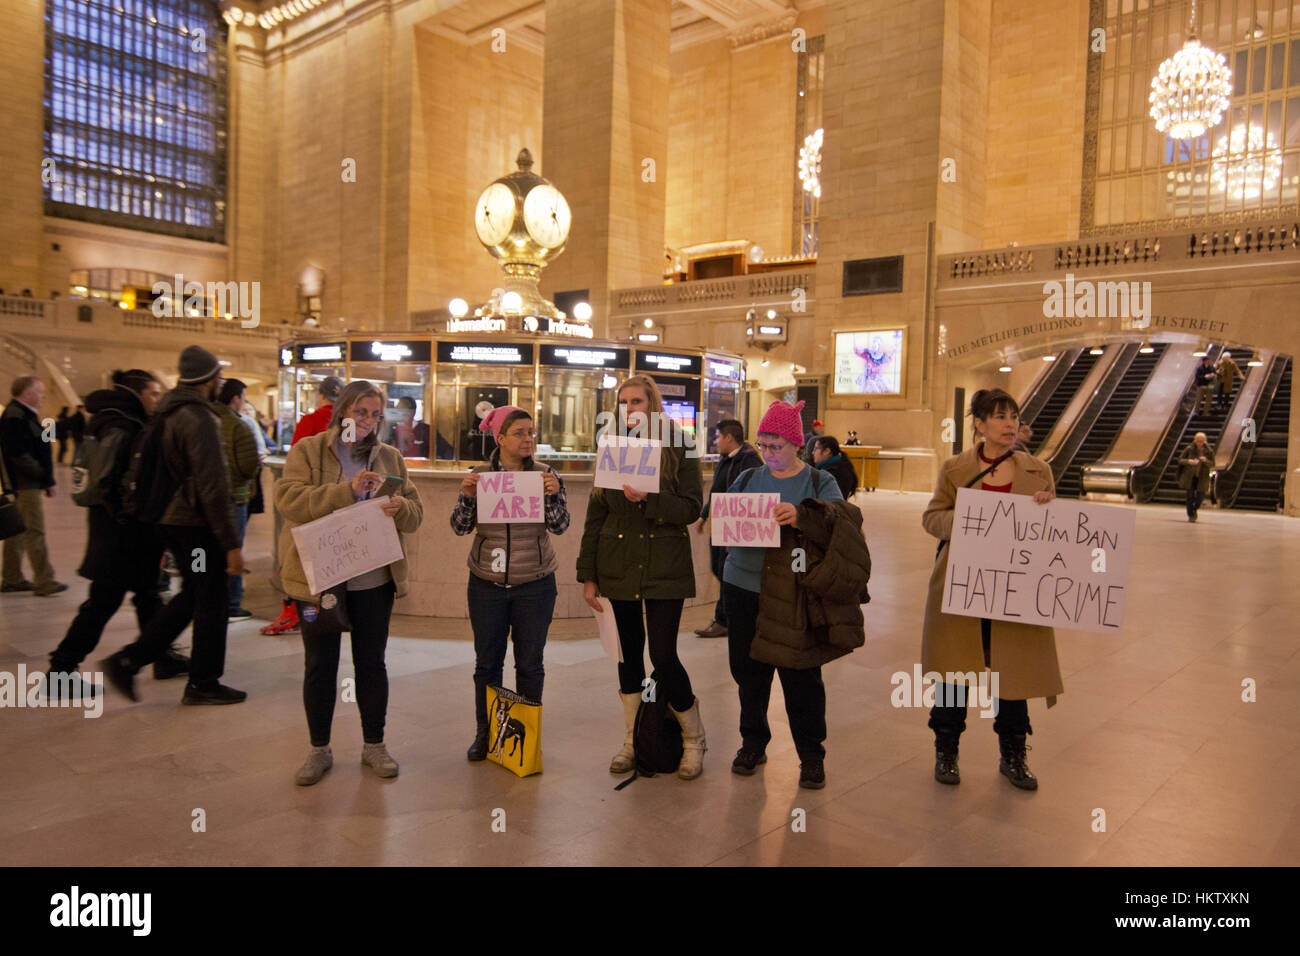 New York City, USA. 29th Jan, 2017. Group of women protesting at Grand Central, New York City against President - Stock Image